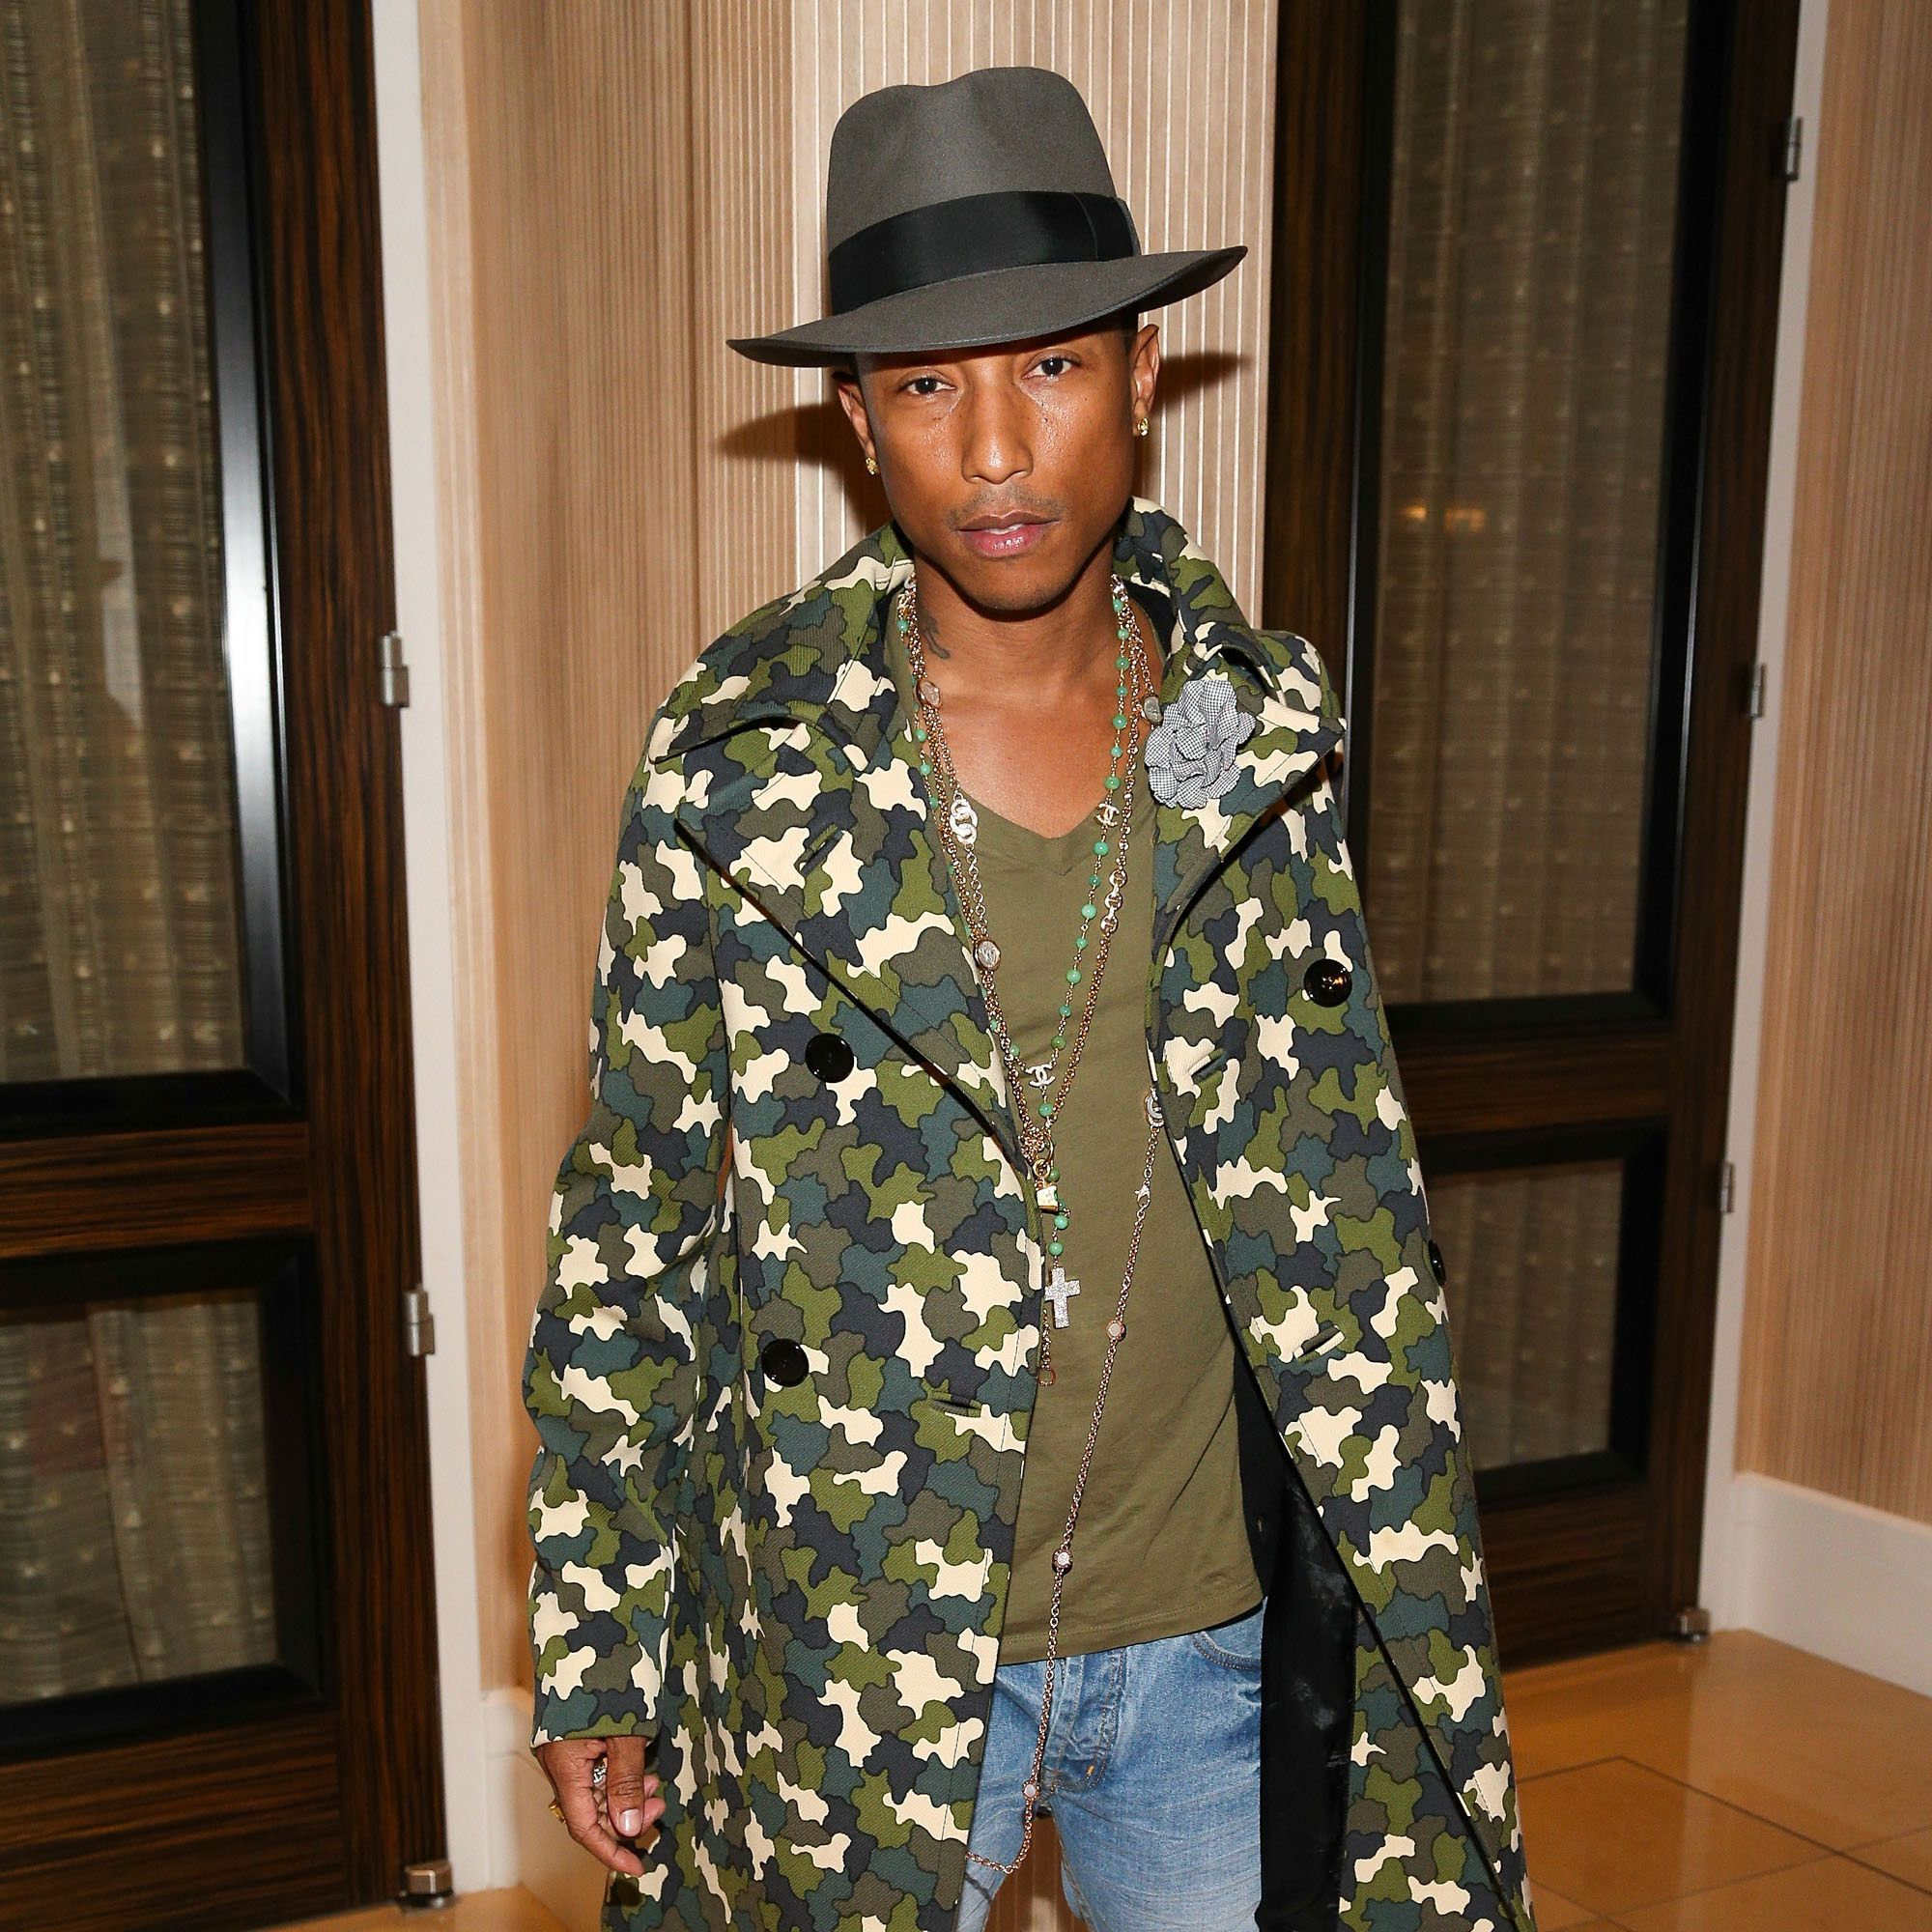 BEVERLY HILLS, CA - OCTOBER 23:  Singer/songwriter Pharrell Williams attends the STARS 2013 Benefit Gala By The Fulfillment Fund at The Beverly Hilton Hotel on October 23, 2013 in Beverly Hills, California.  (Photo by Imeh Akpanudosen/Getty Images)